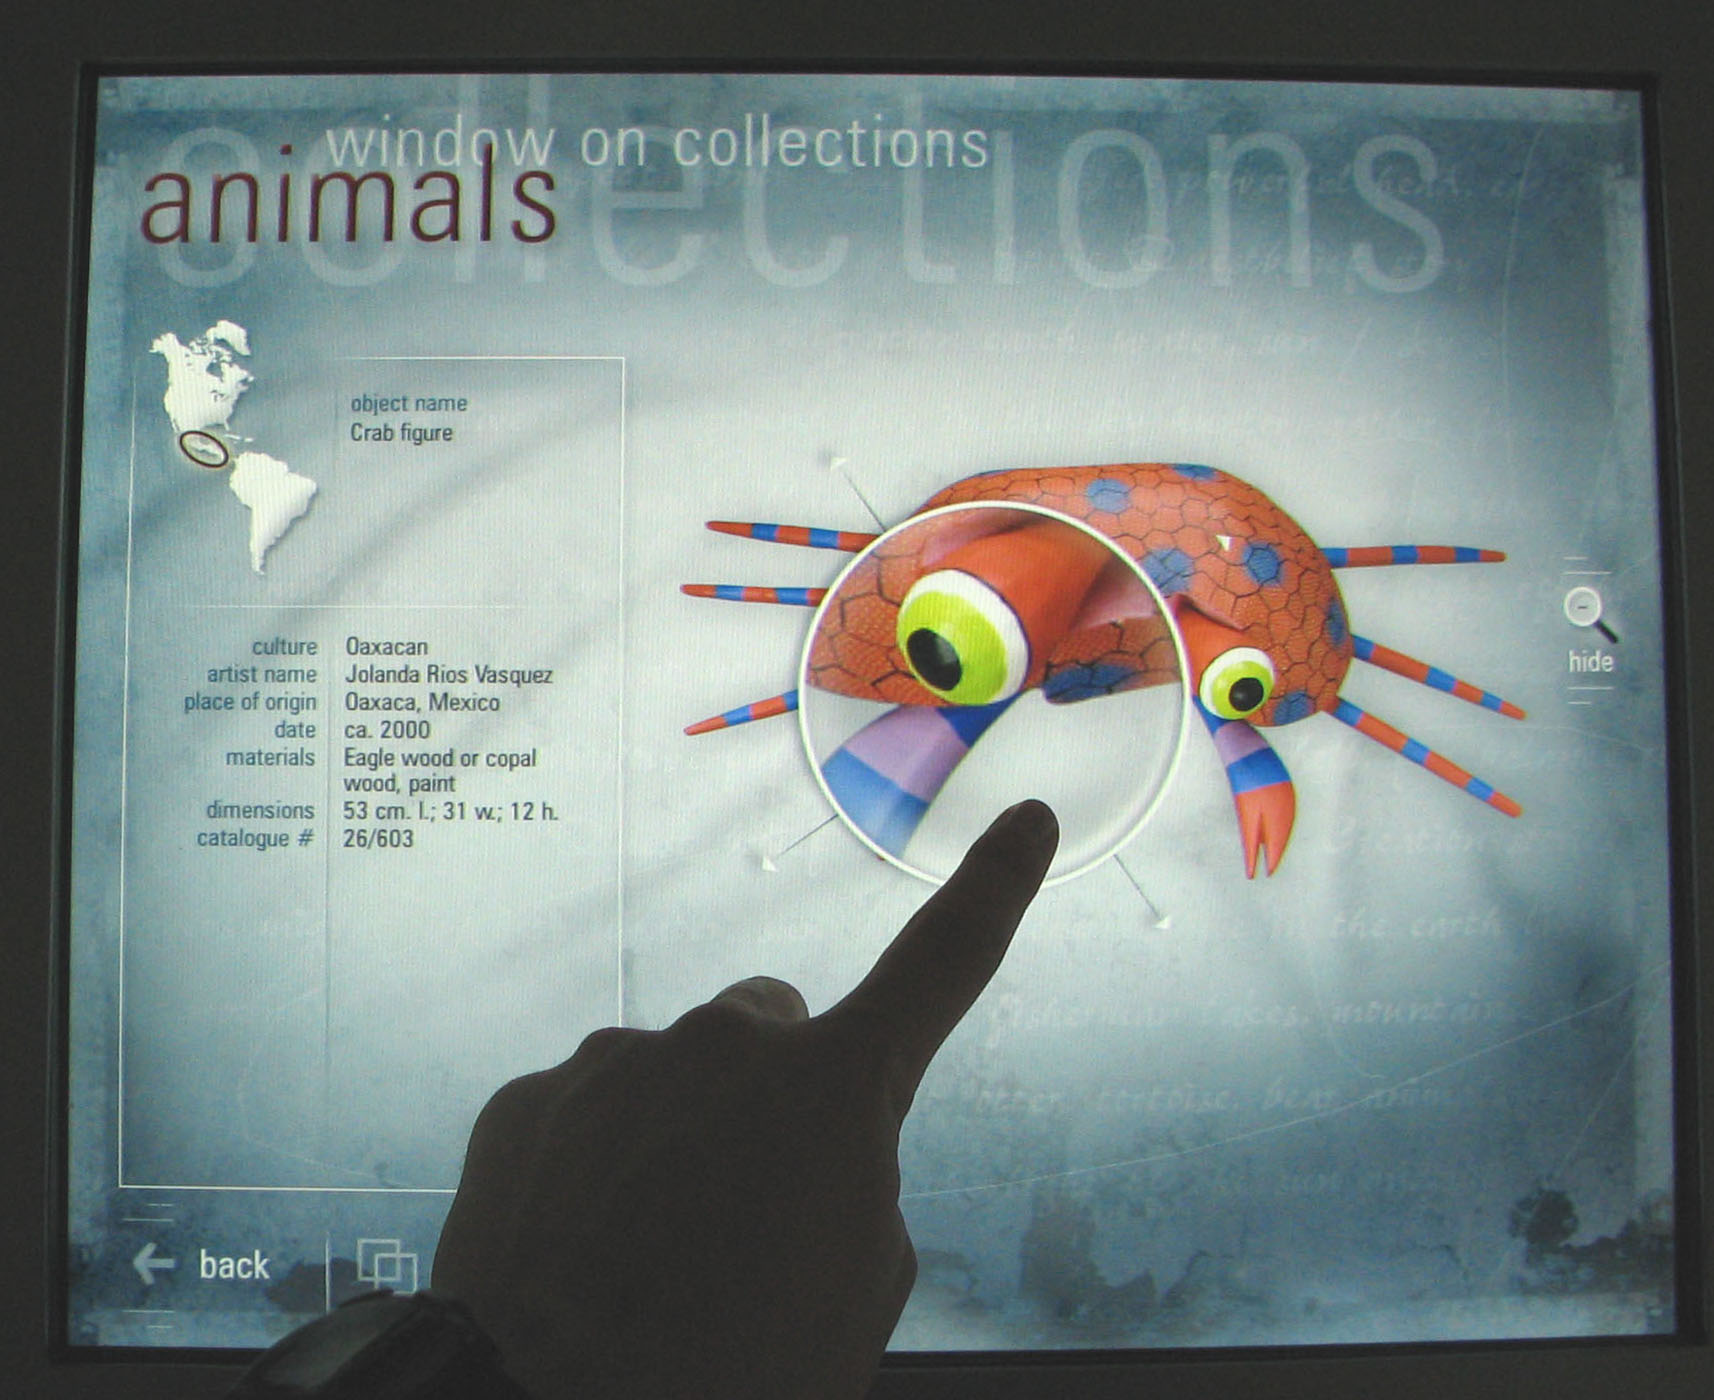 Interactive museum feature